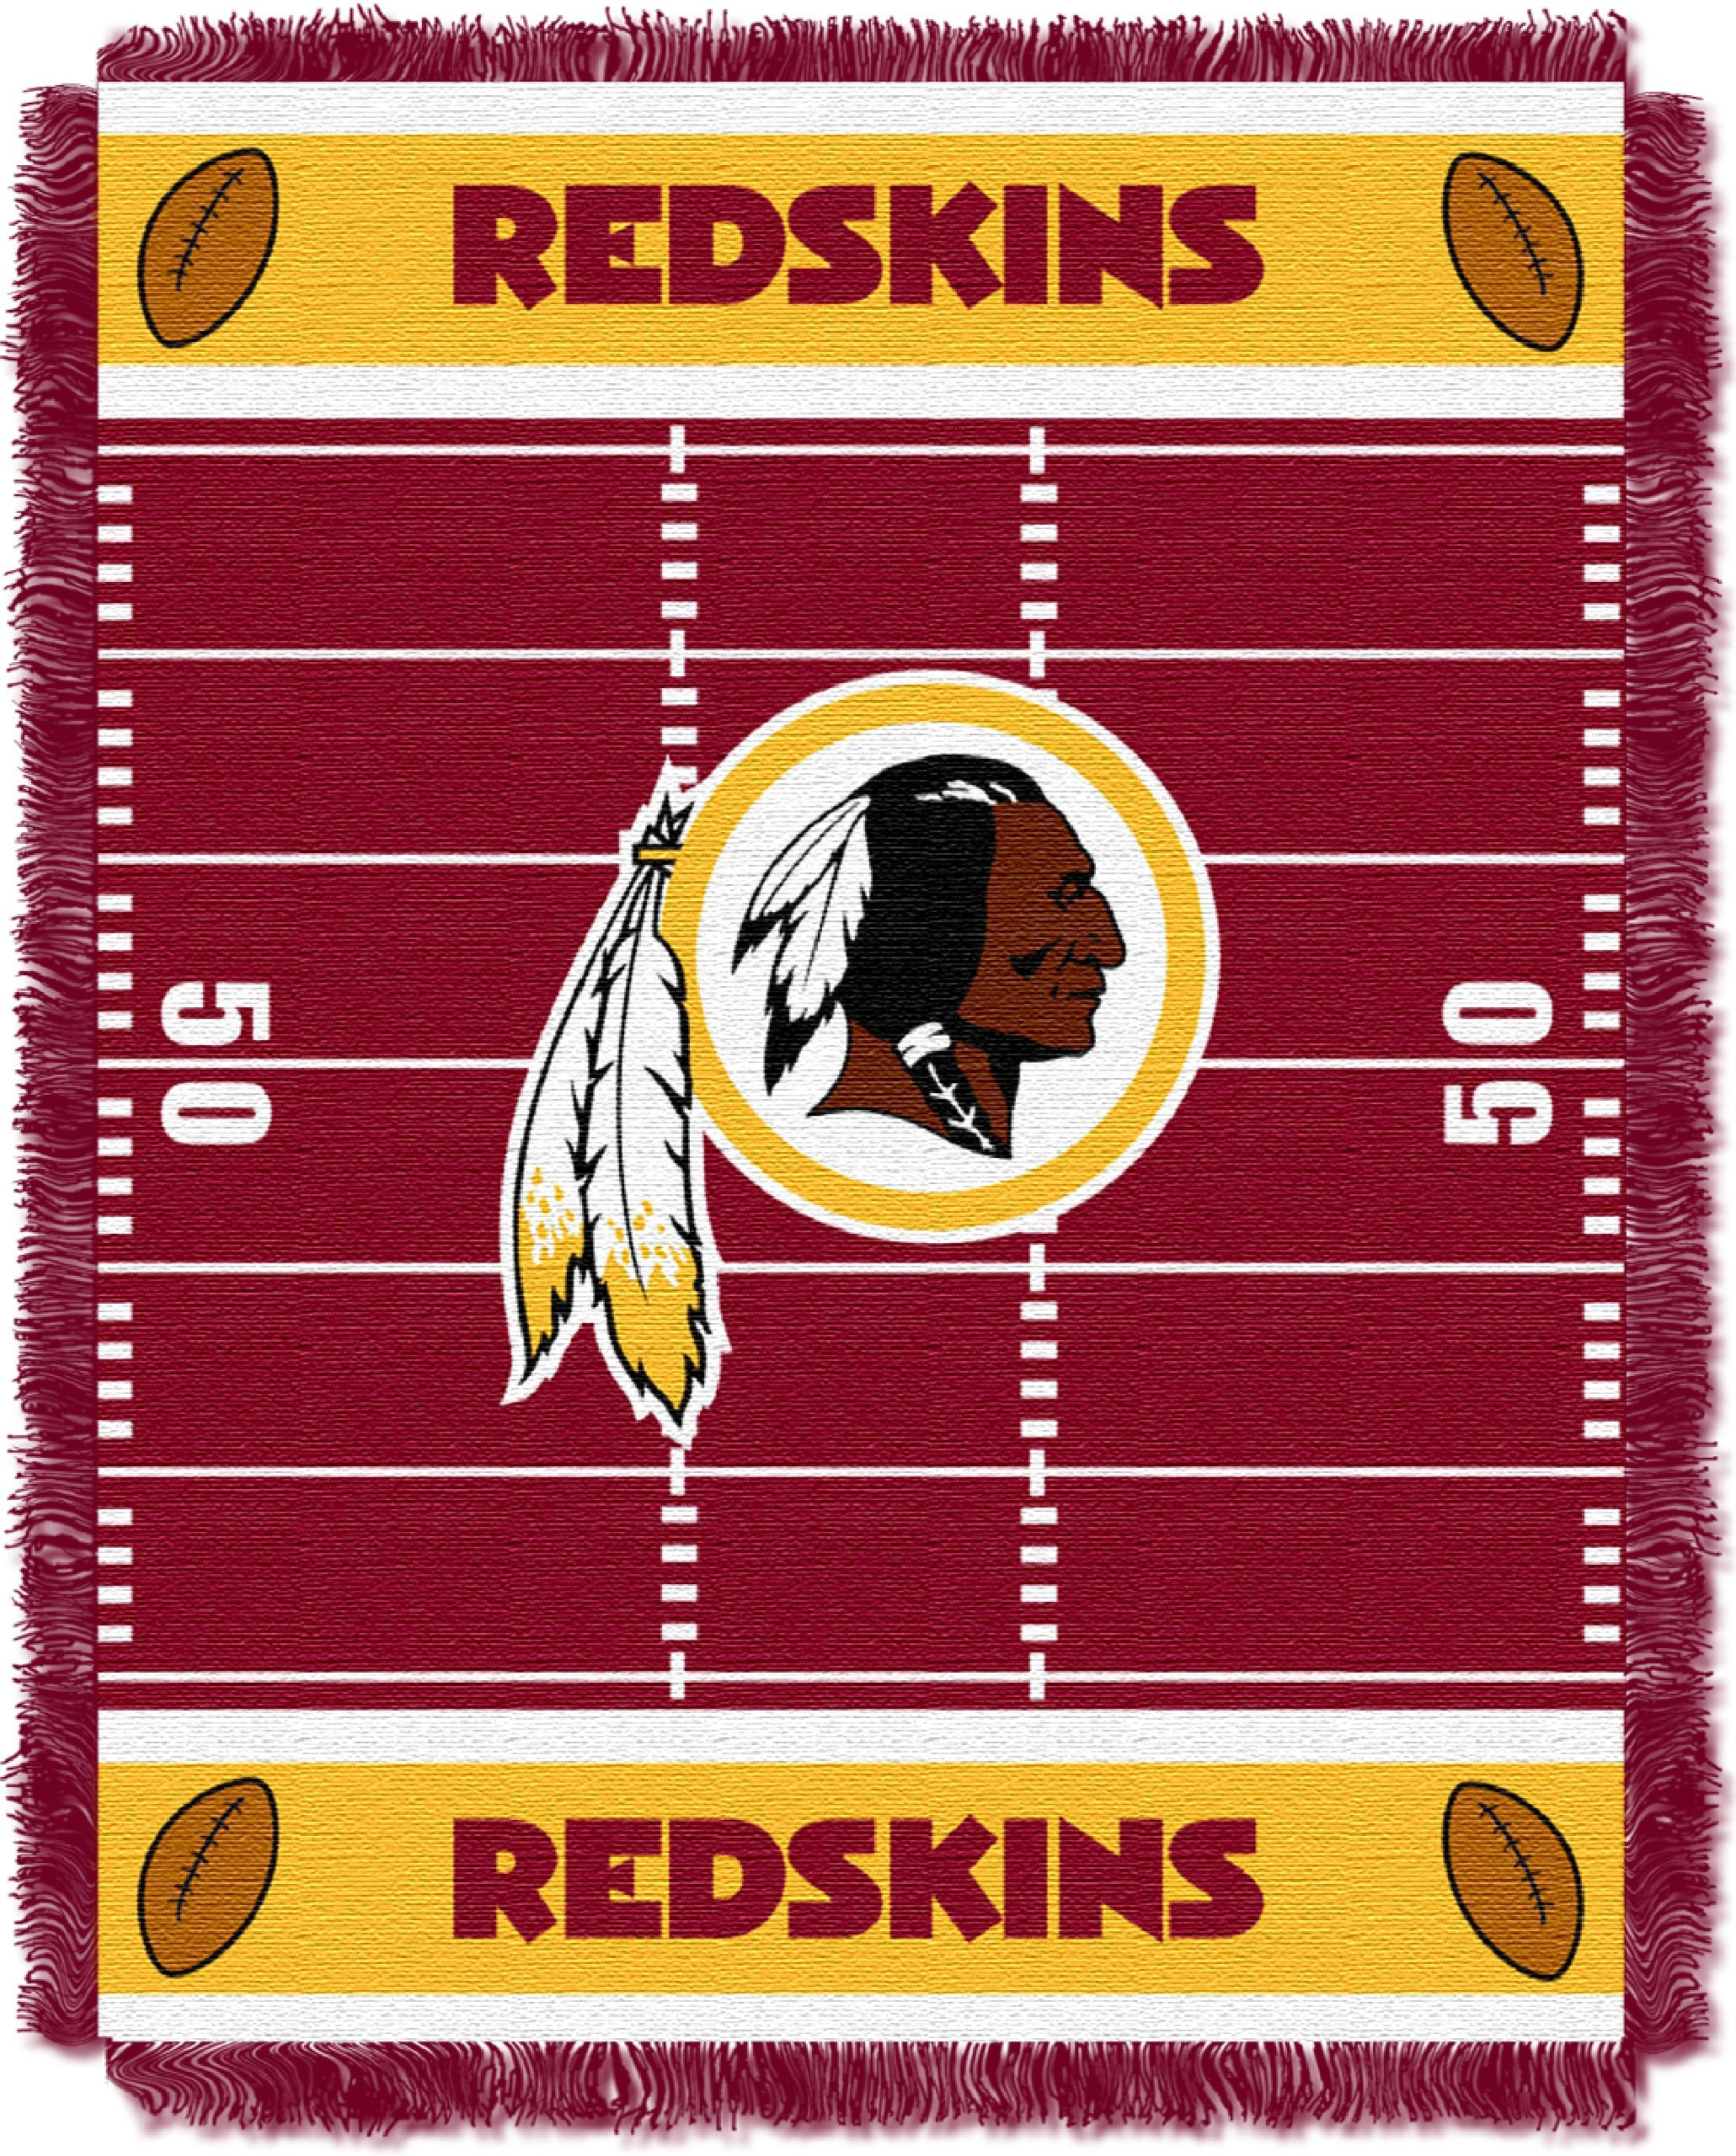 The Northwest Company Officially Licensed NFL Washington Redskins Field Bear Woven Jacquard Baby Throw Blanket, 36'' x 46'', Multi Color by The Northwest Company